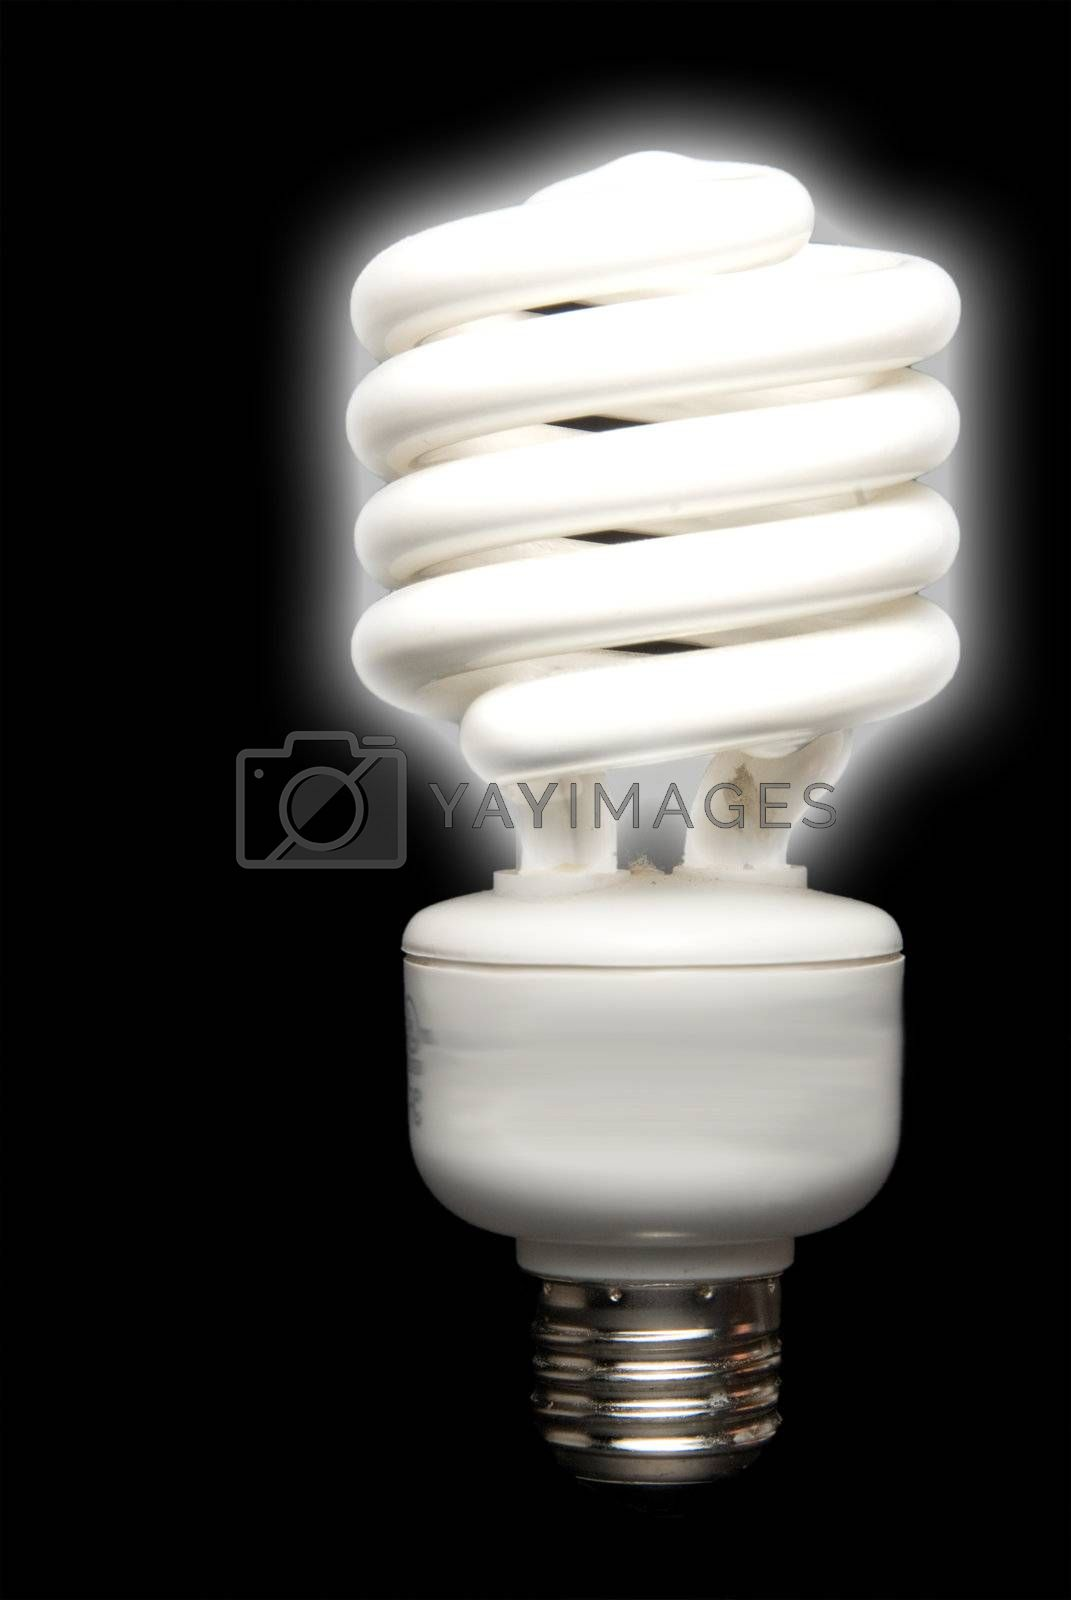 Royalty free image of Florescent Bulb by robeo